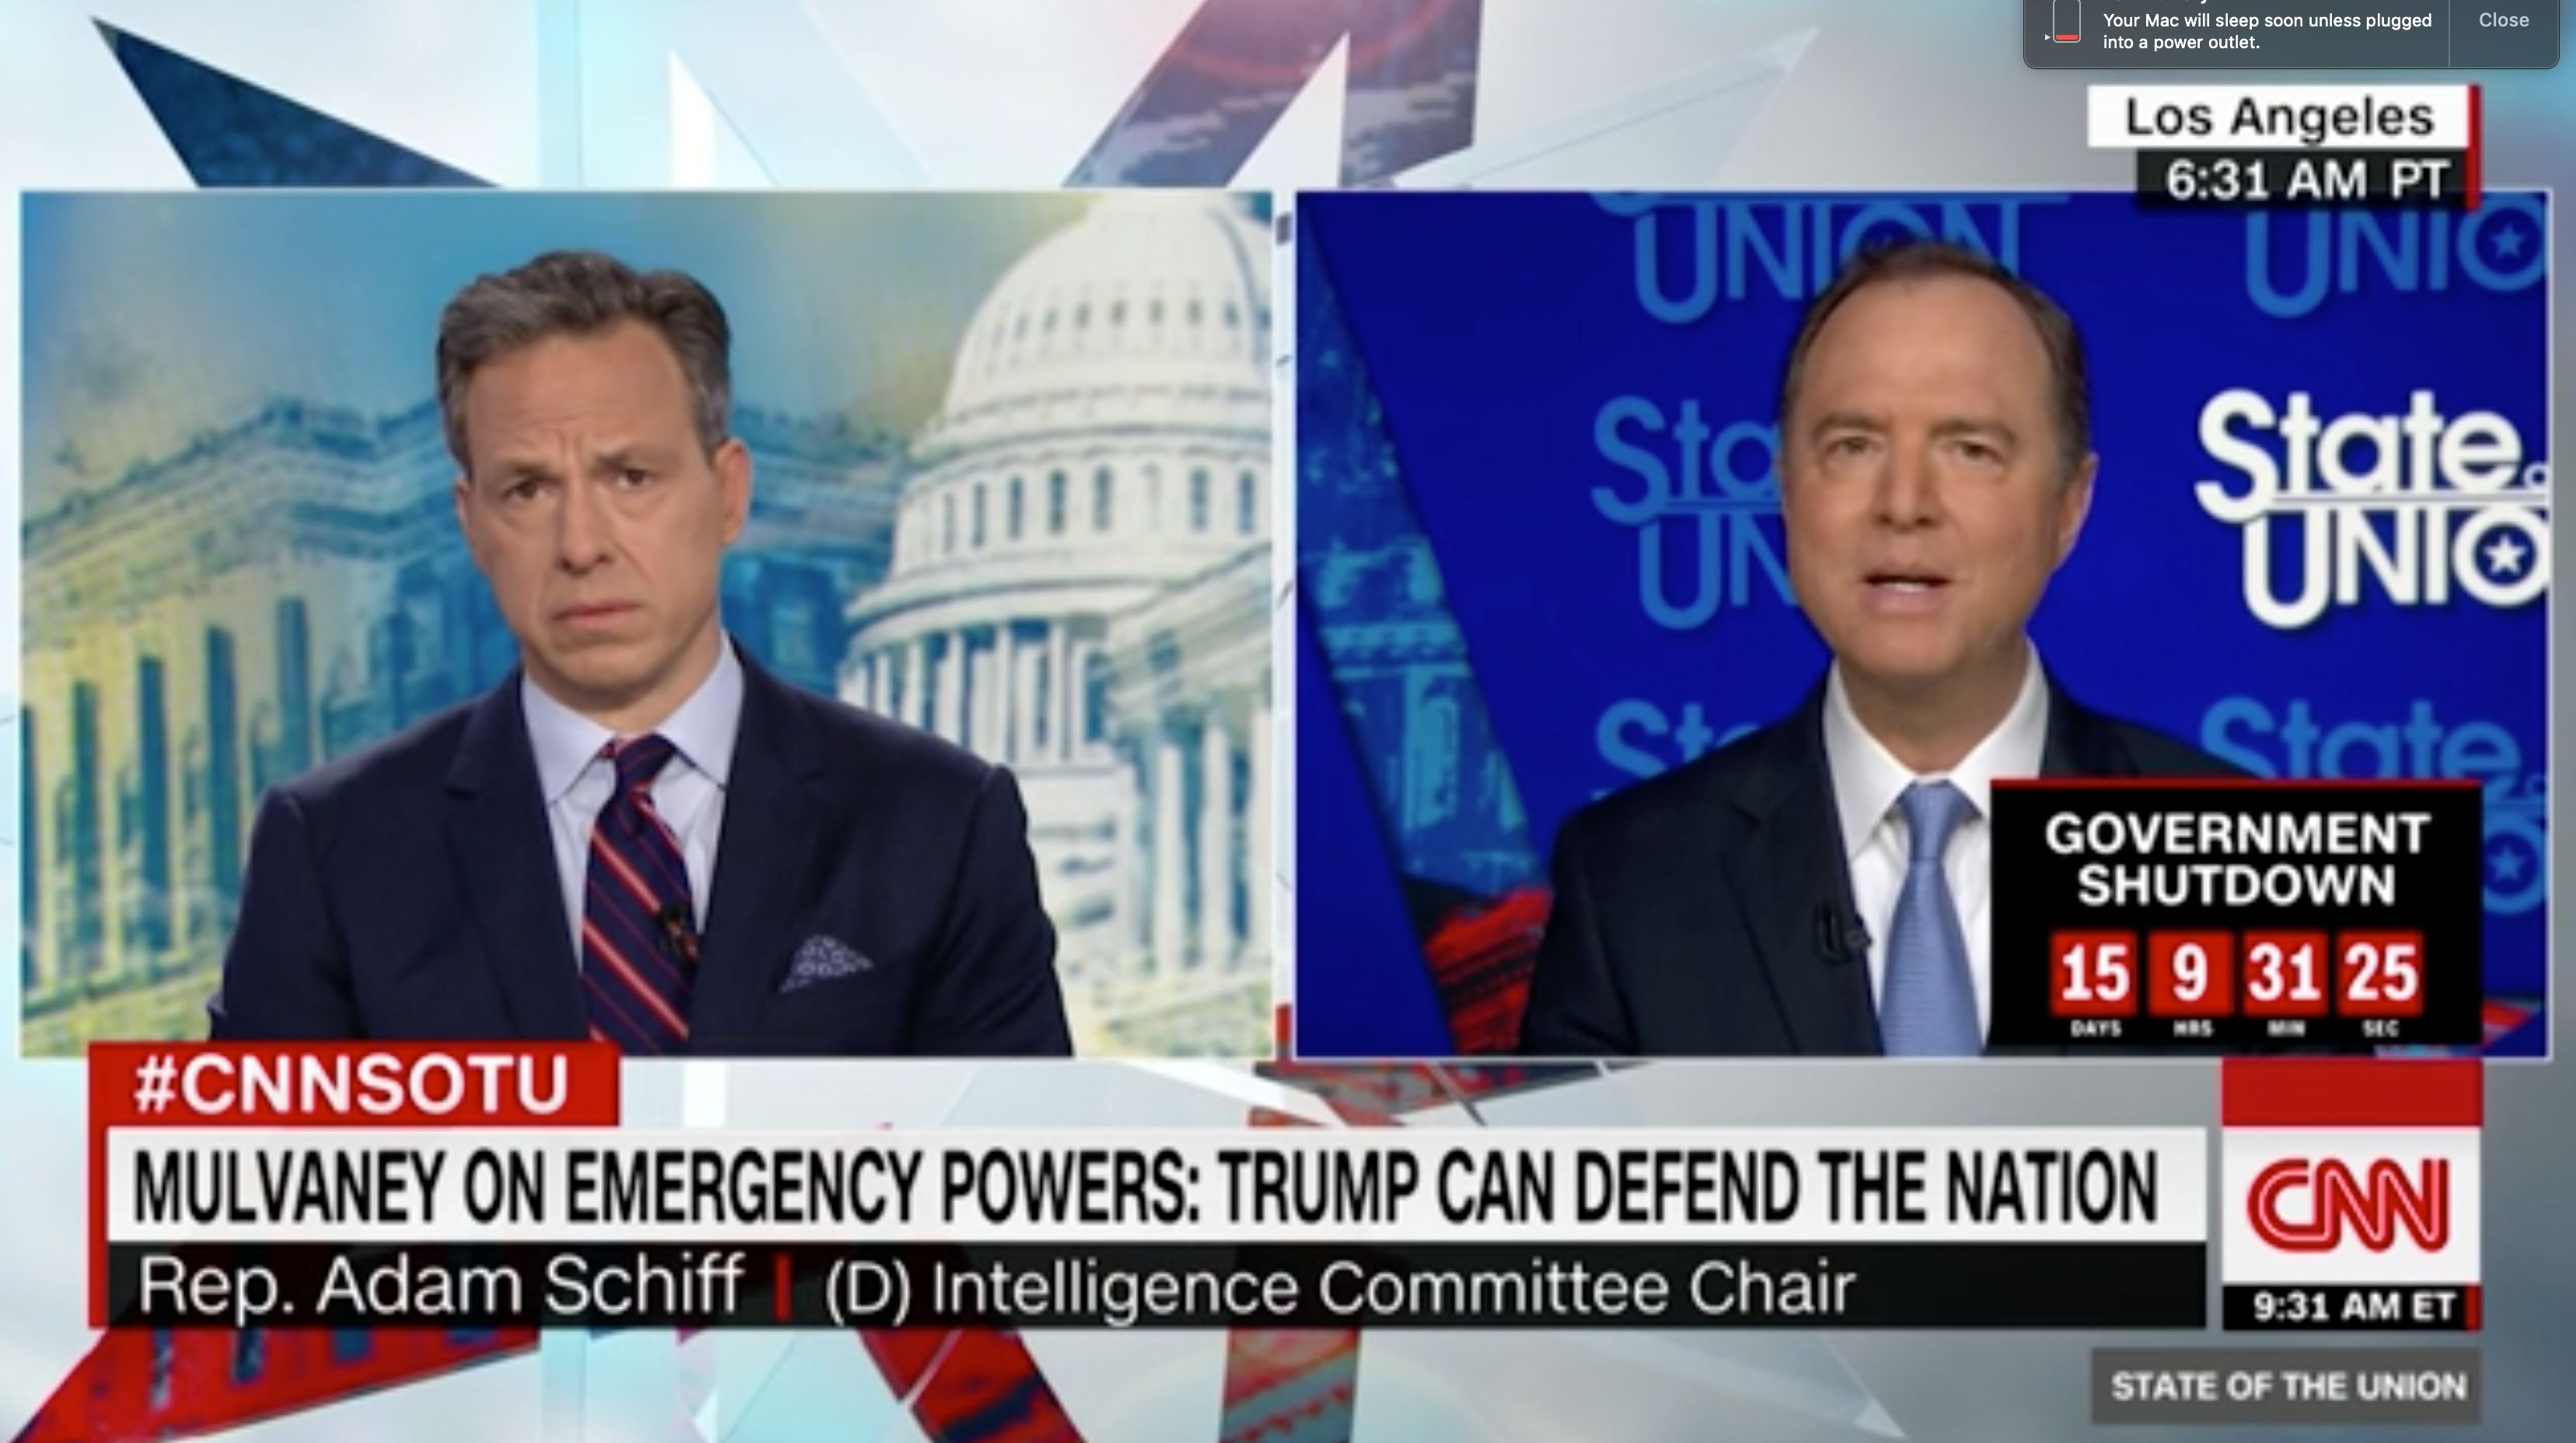 Rep. Adam Schiff says the president can't declare a state of emergency to fund the border wall.